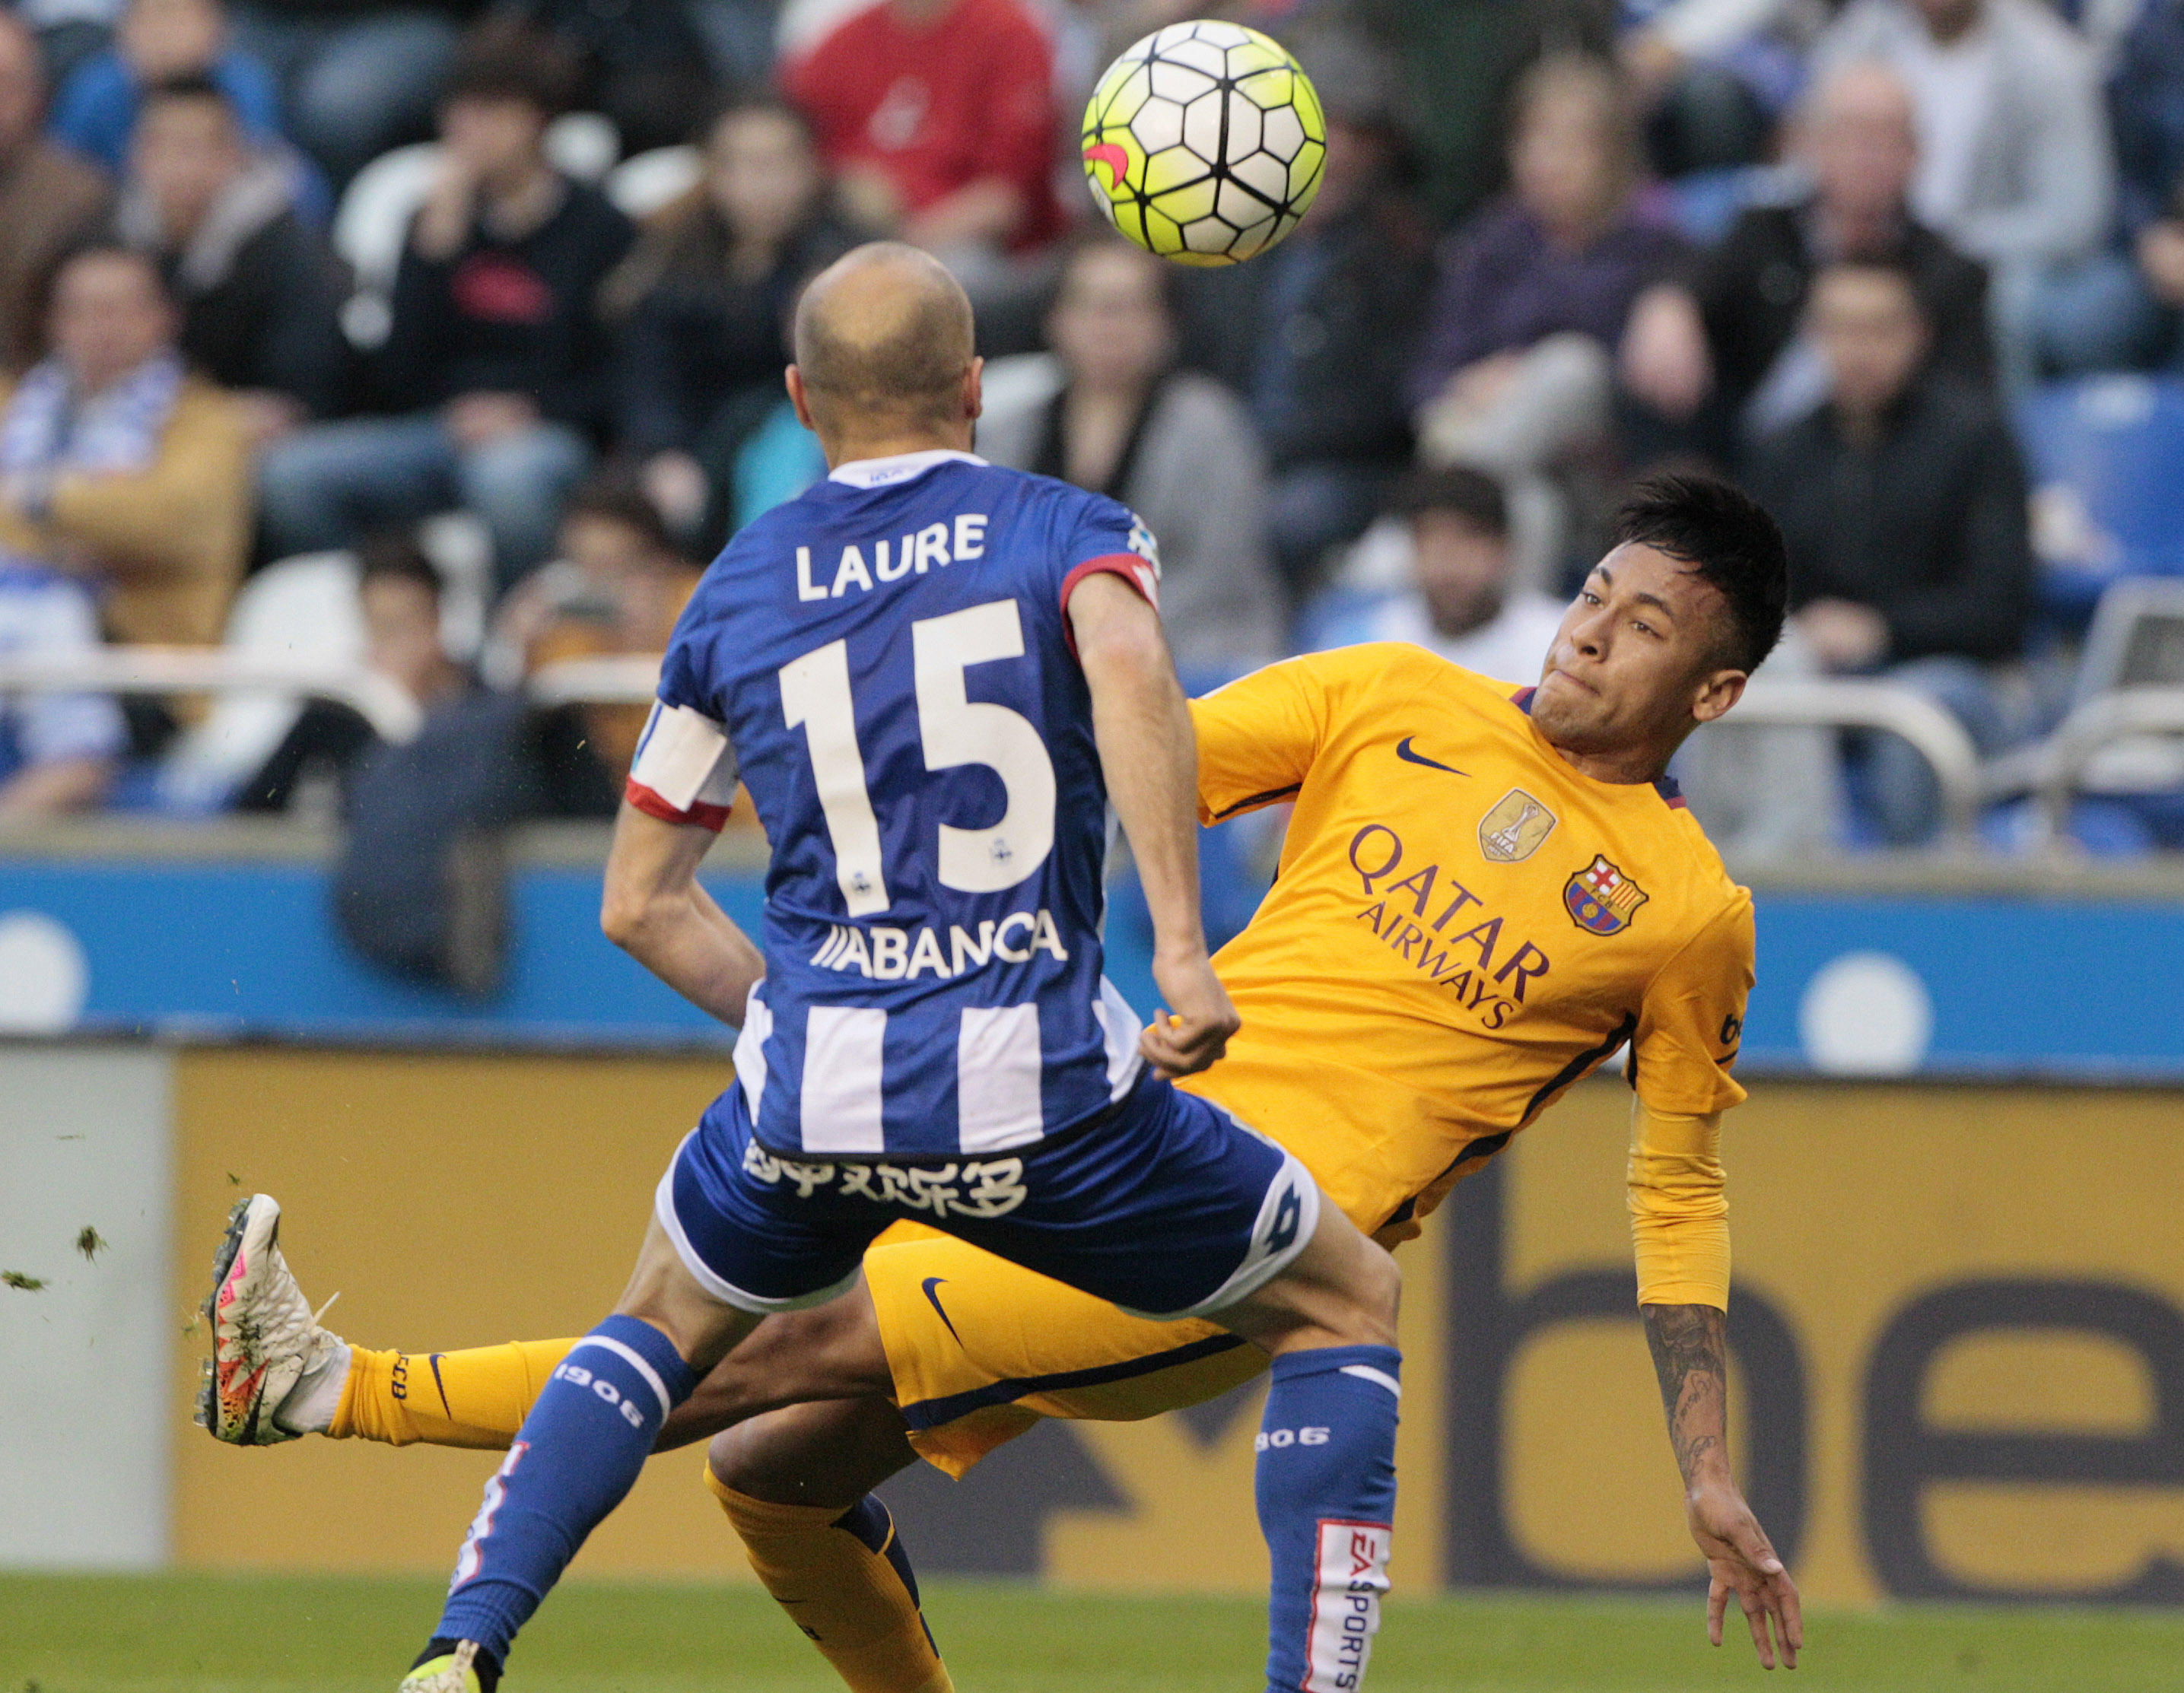 Deportivo's Laure, left, challenges for the ball with Barcelona's Neymar during a Spanish La Liga soccer match between Deportivo Coruna and Barcelona at the Riazor stadium in A Coruna, Spain, Wednesday, April 20, 2016. (AP Photo/Lalo R. Villar)